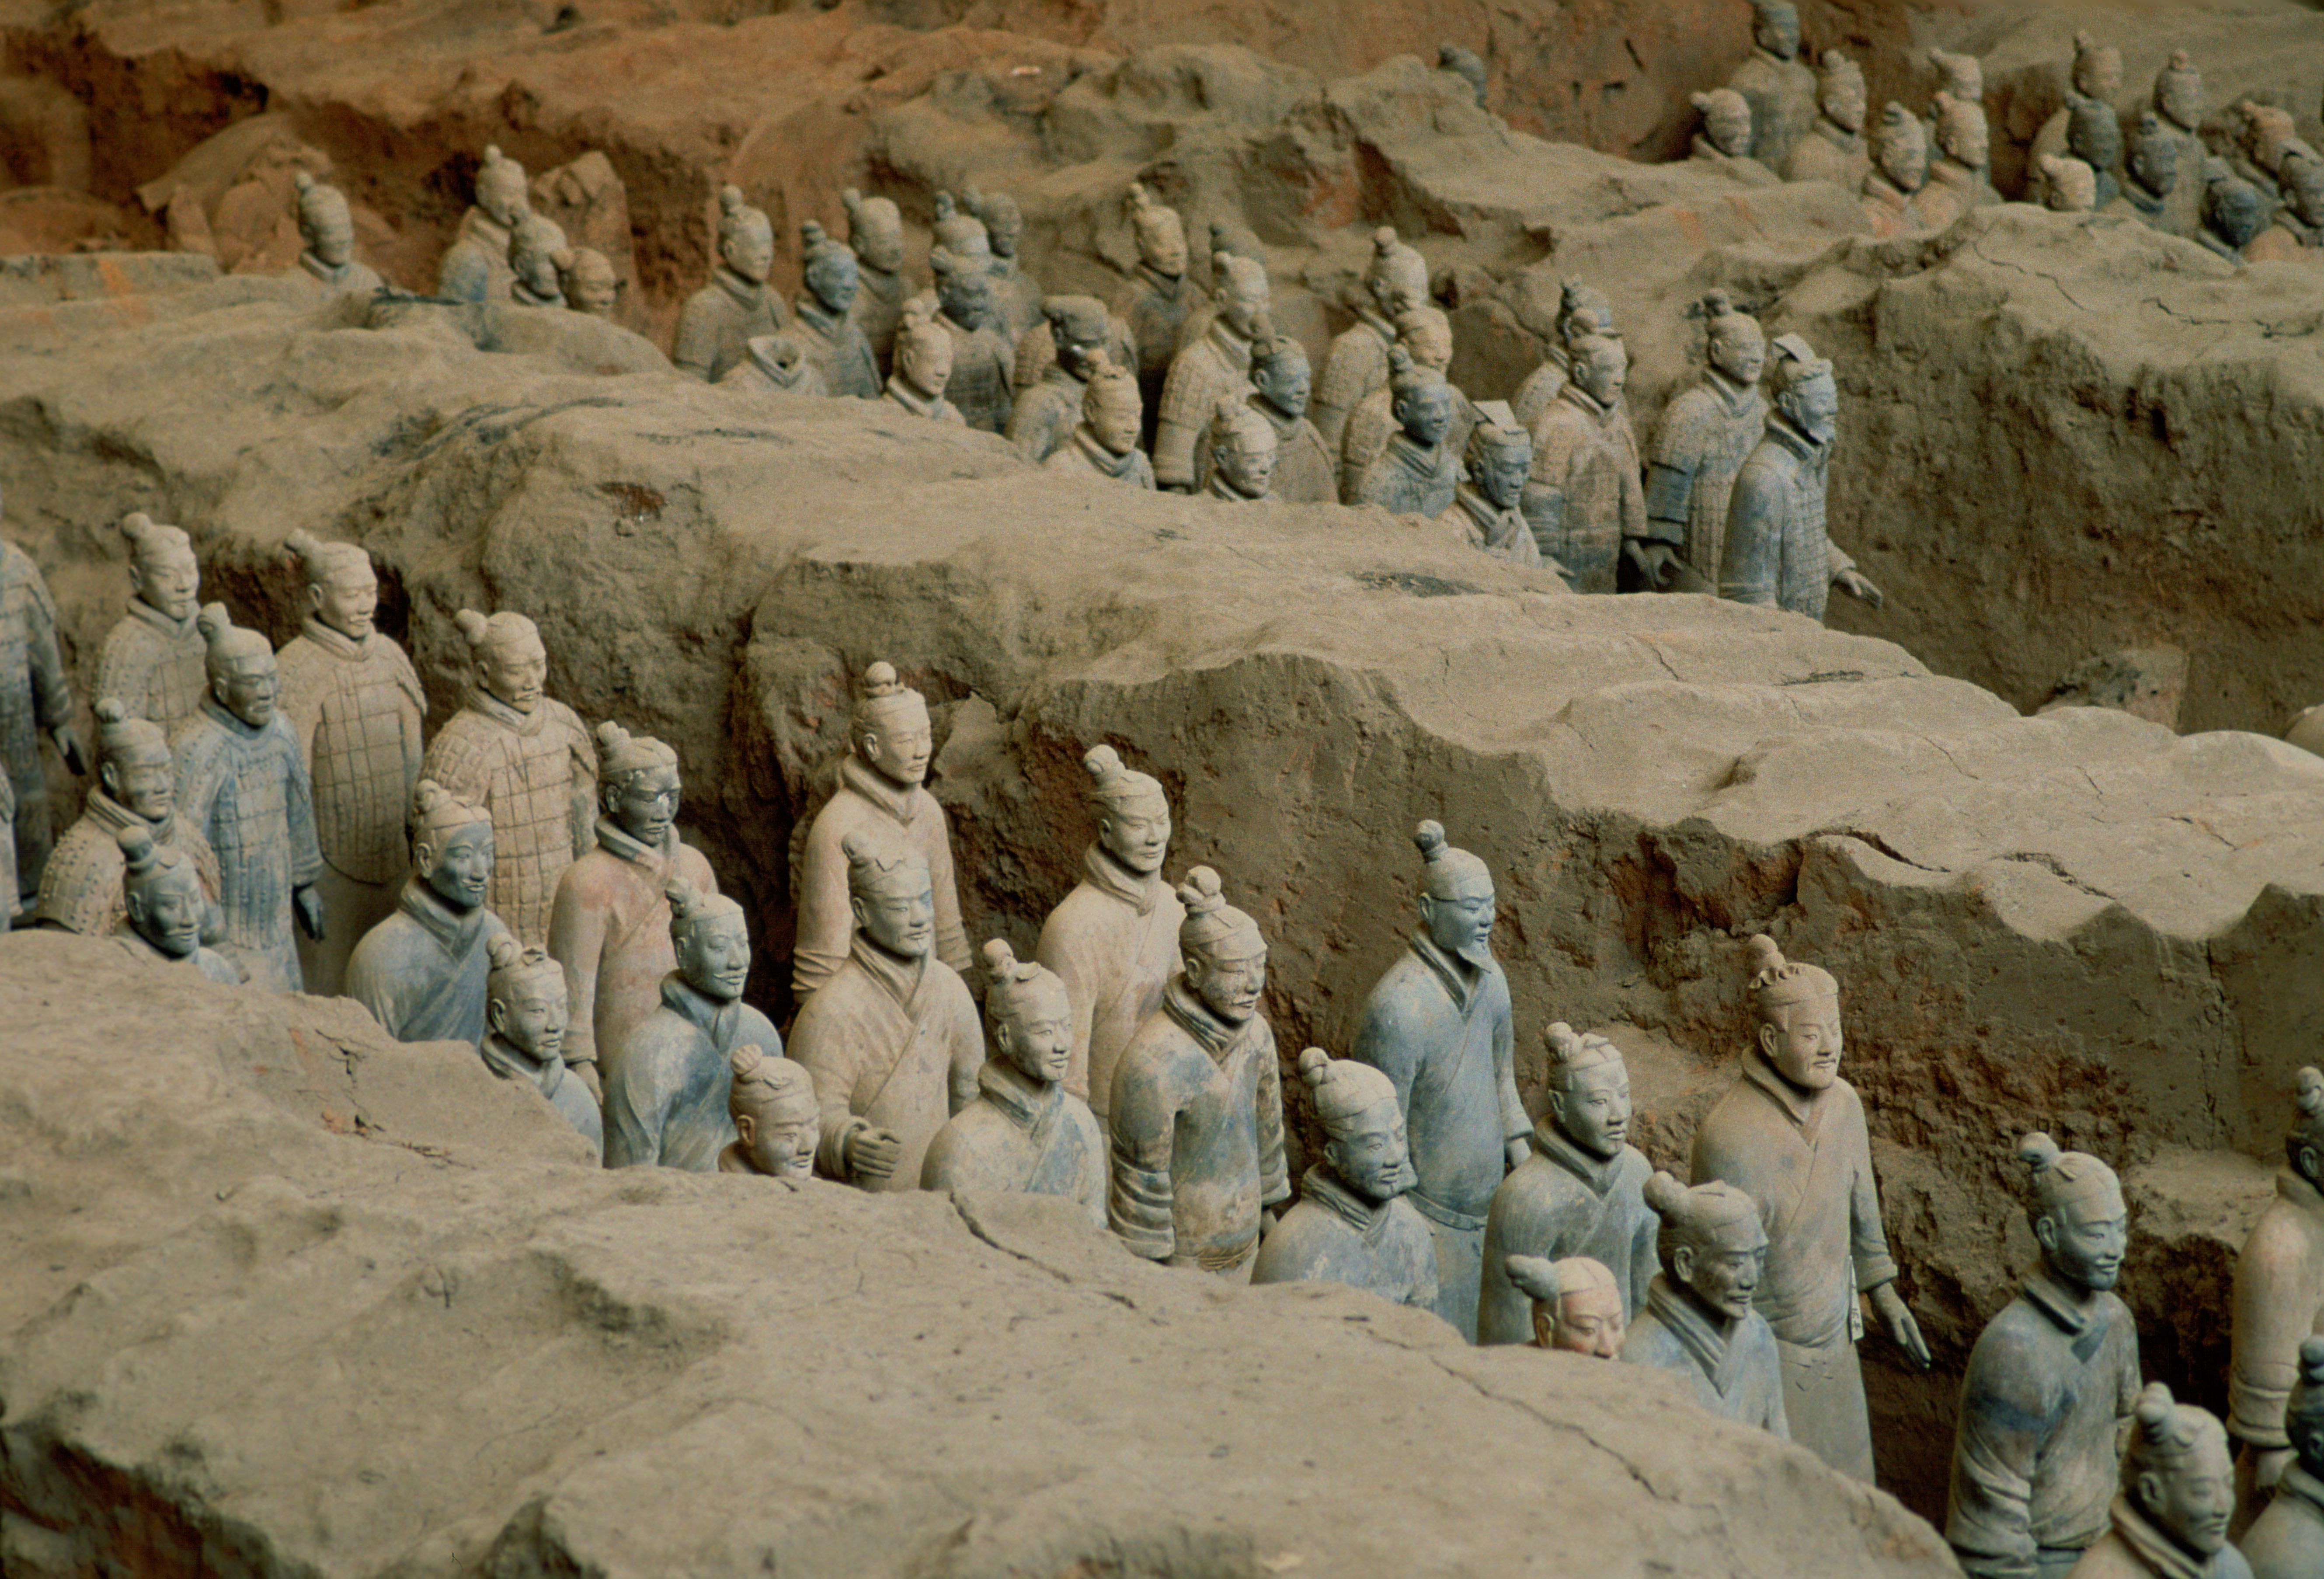 Terracotta Army of Warriors